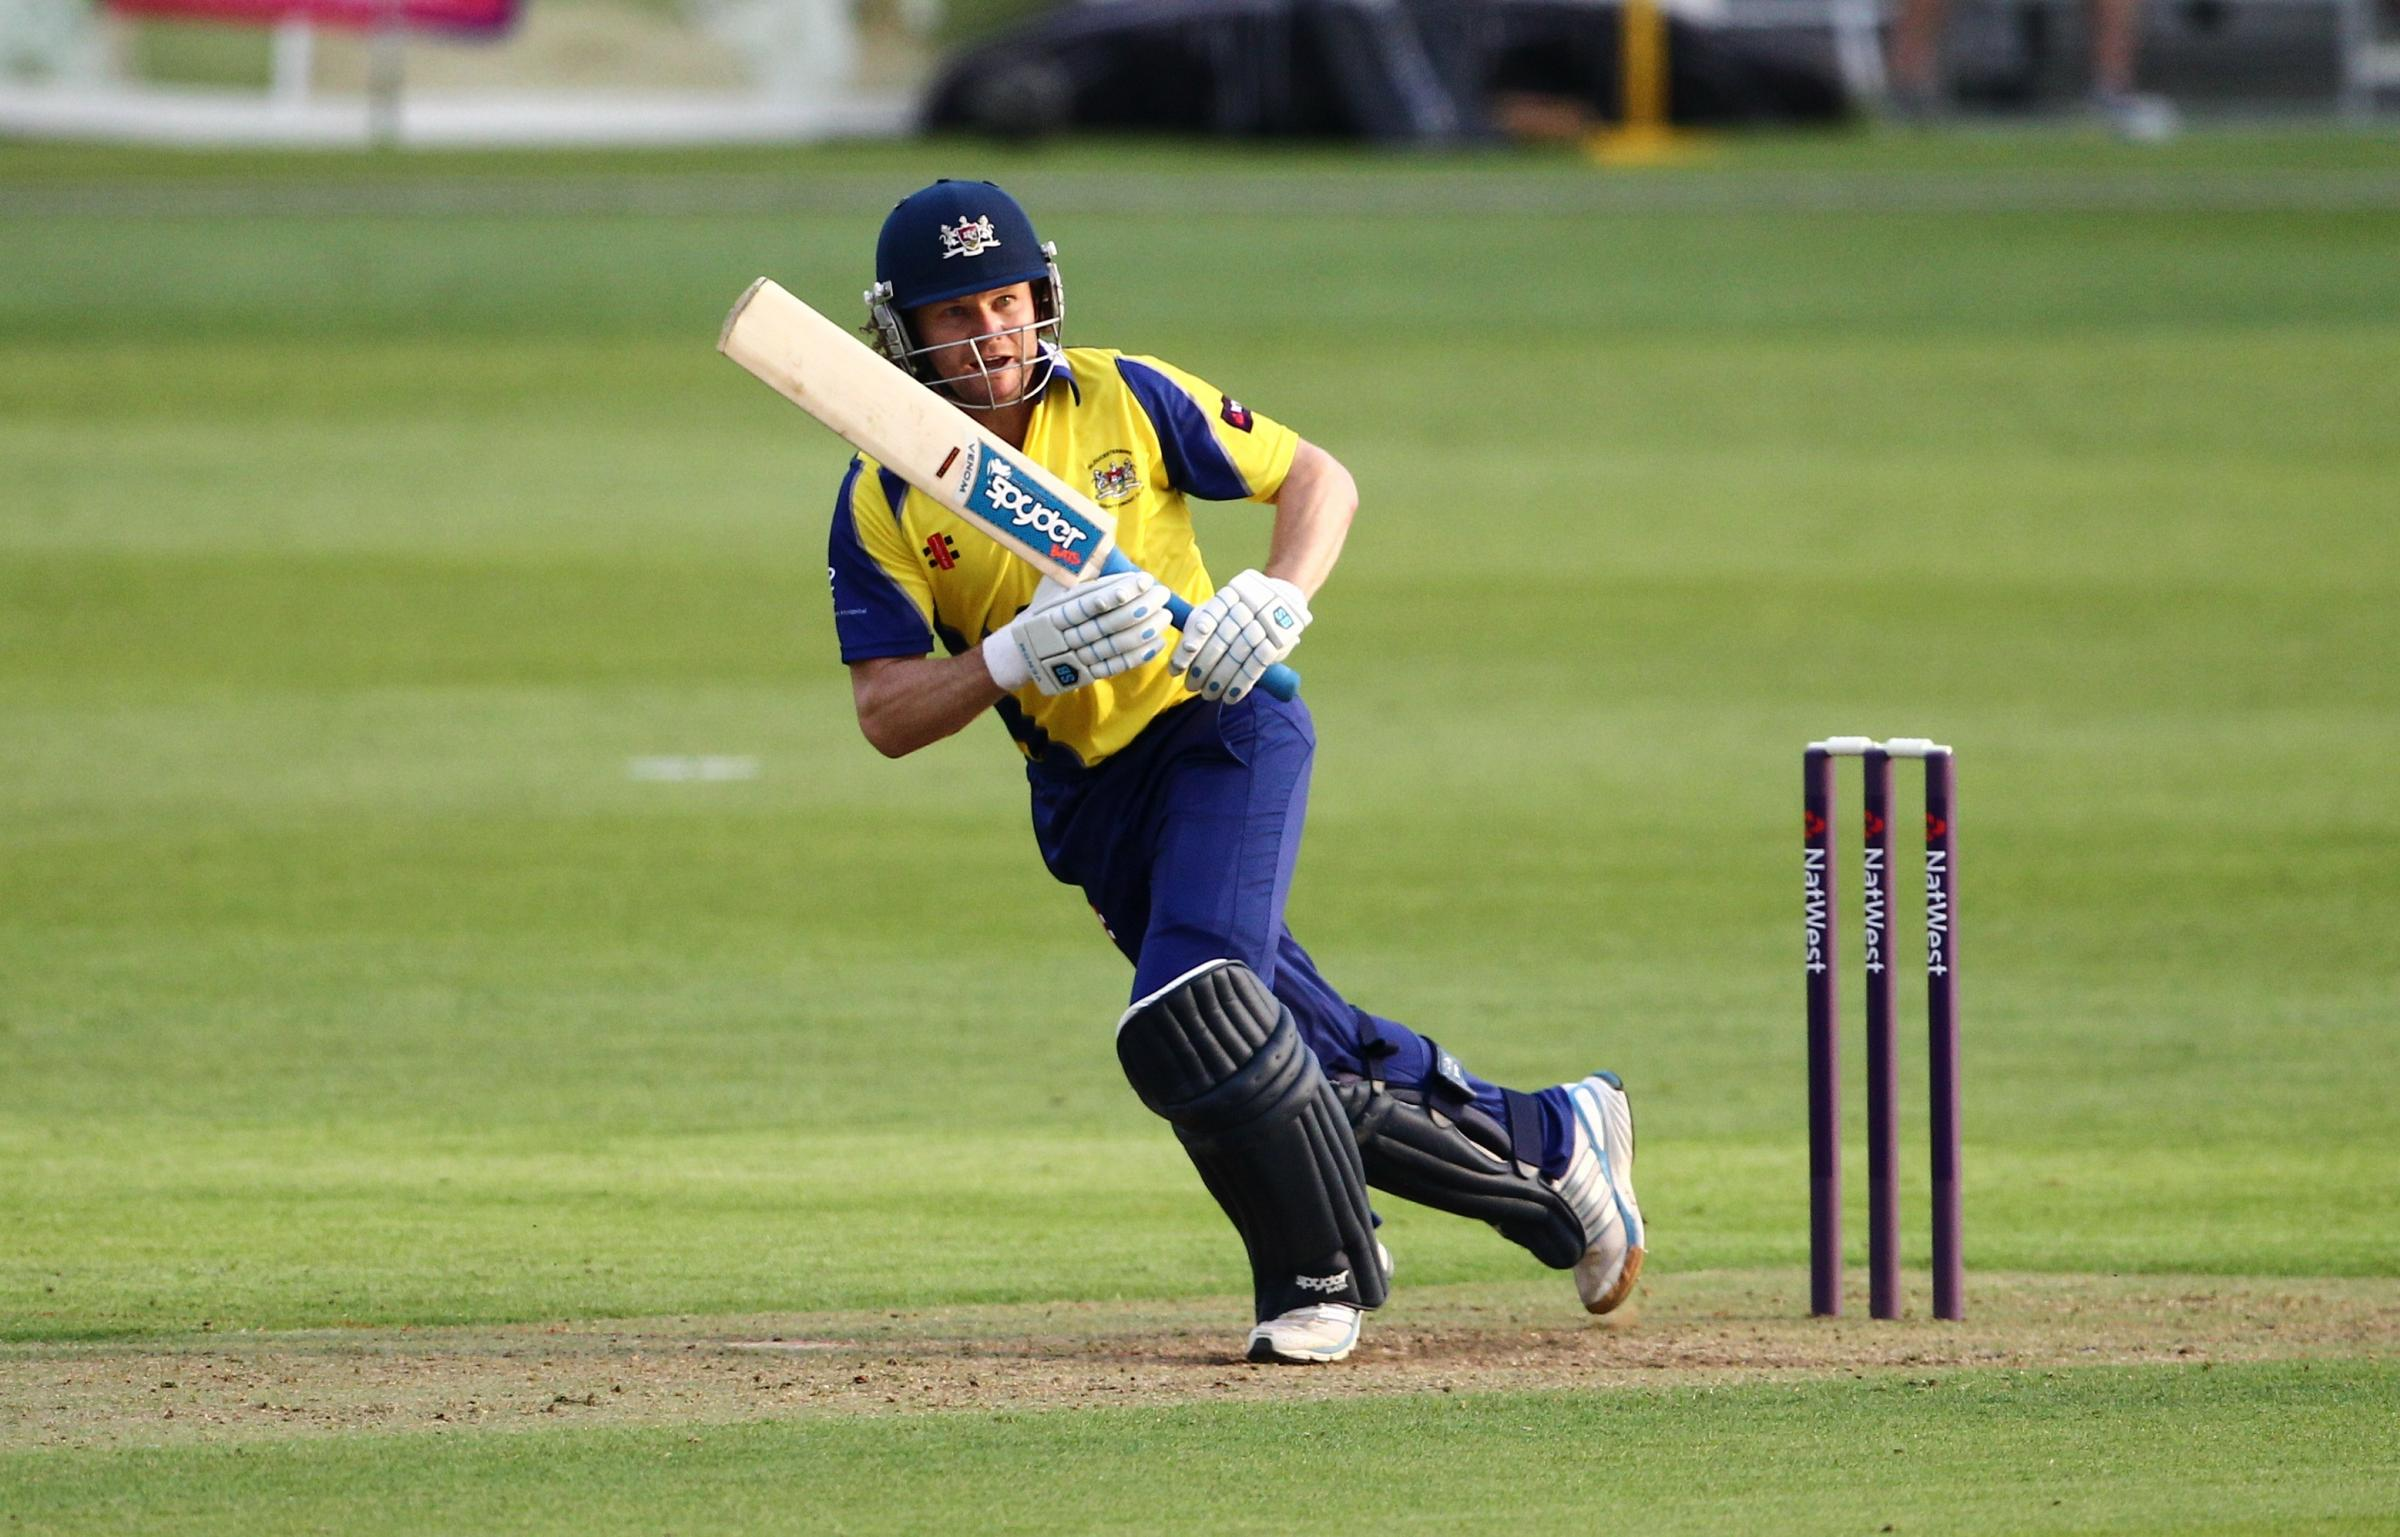 Gloucestershire's Hamish Marshall. Picture by Martin Bennett.